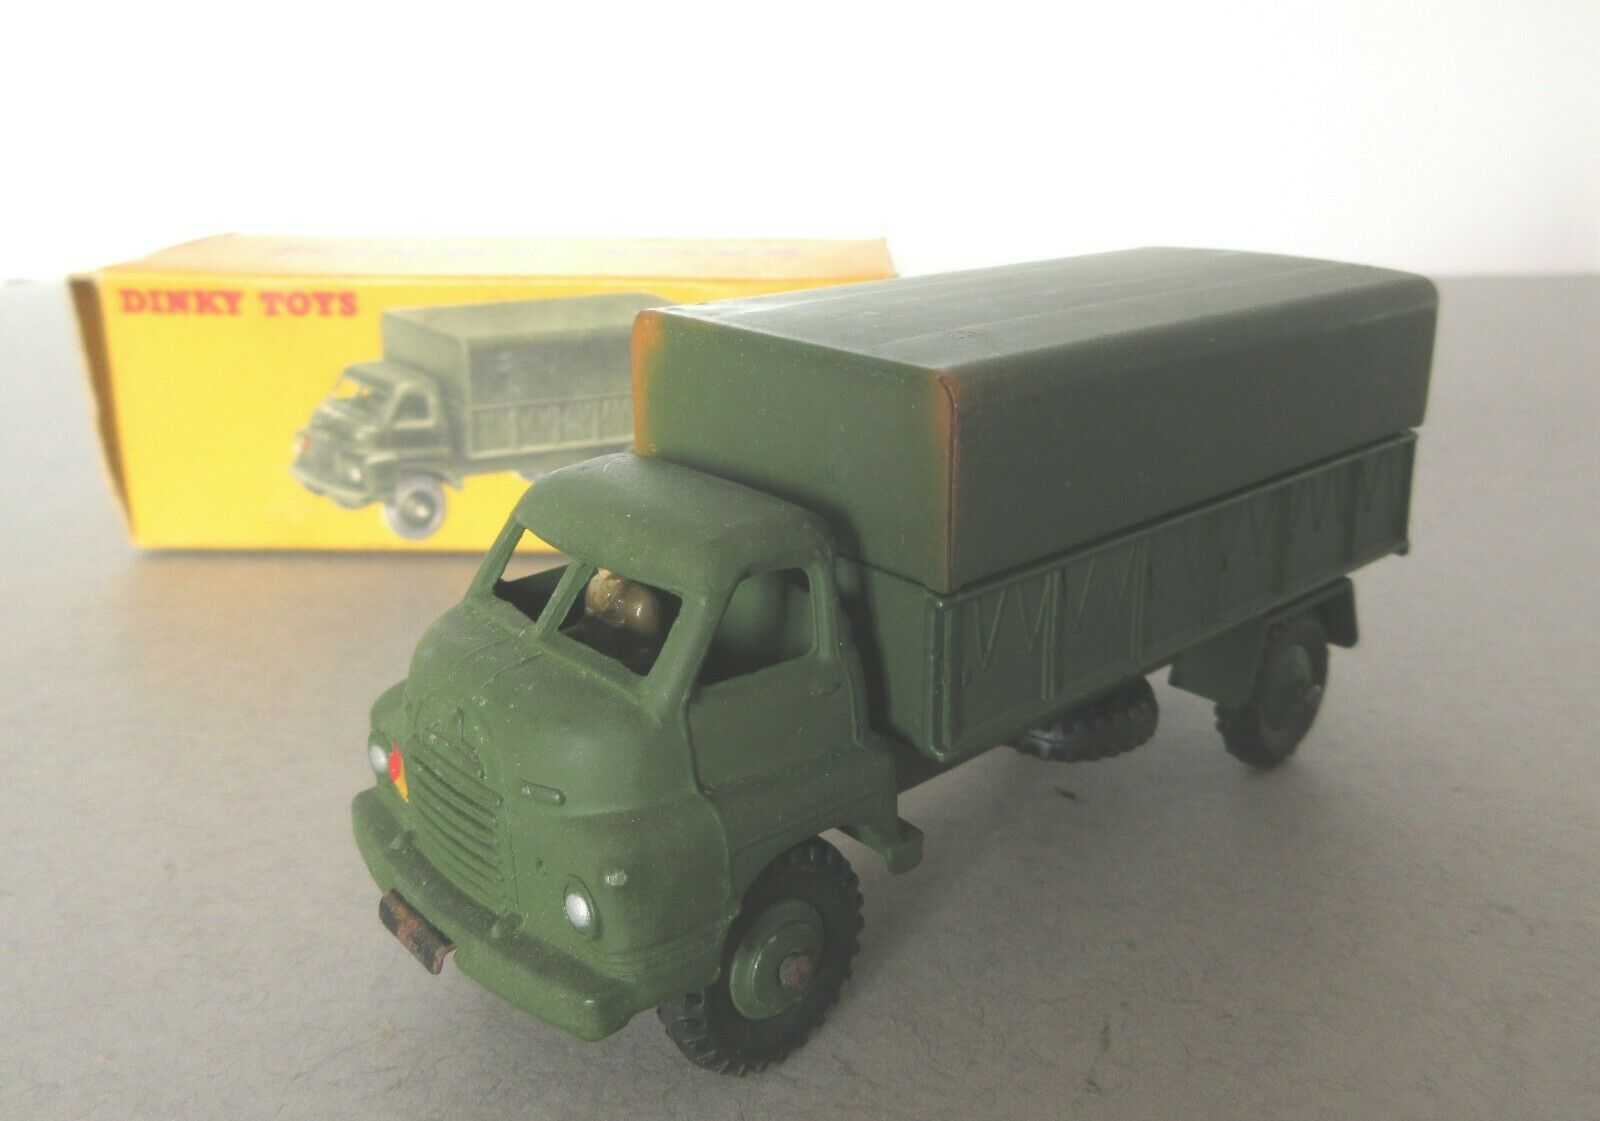 DINKY TOYS ARMY BEDFORD RL trois ton army wagon-années 1950 POST WAR DINKY TOY